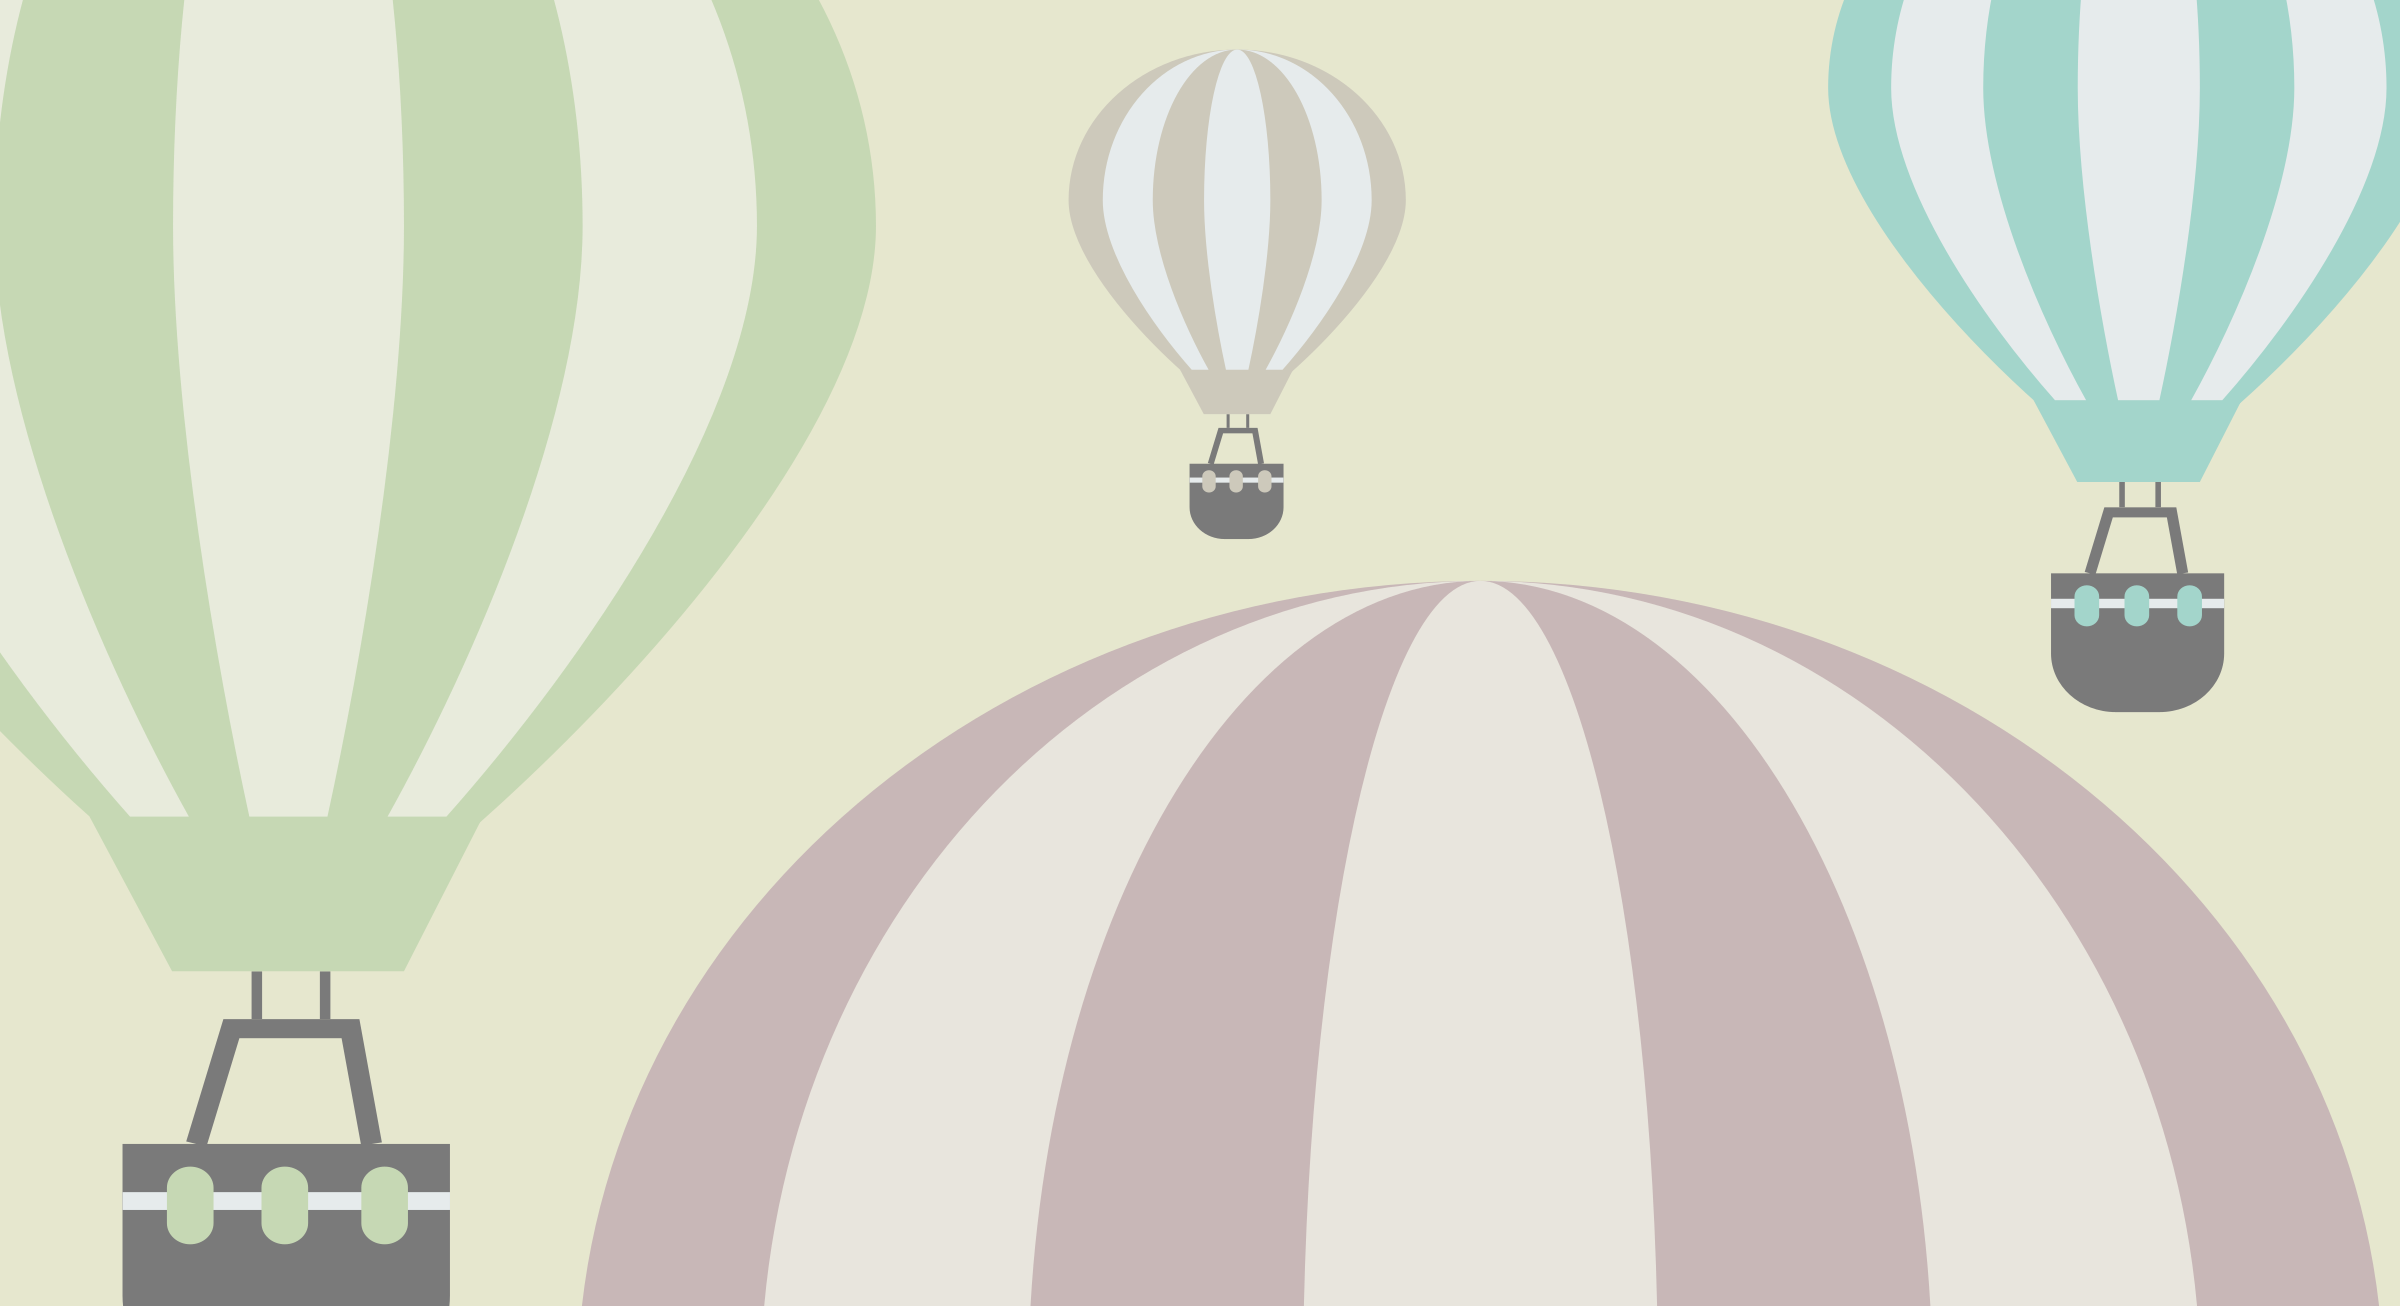 Hot air balloons background by anarres